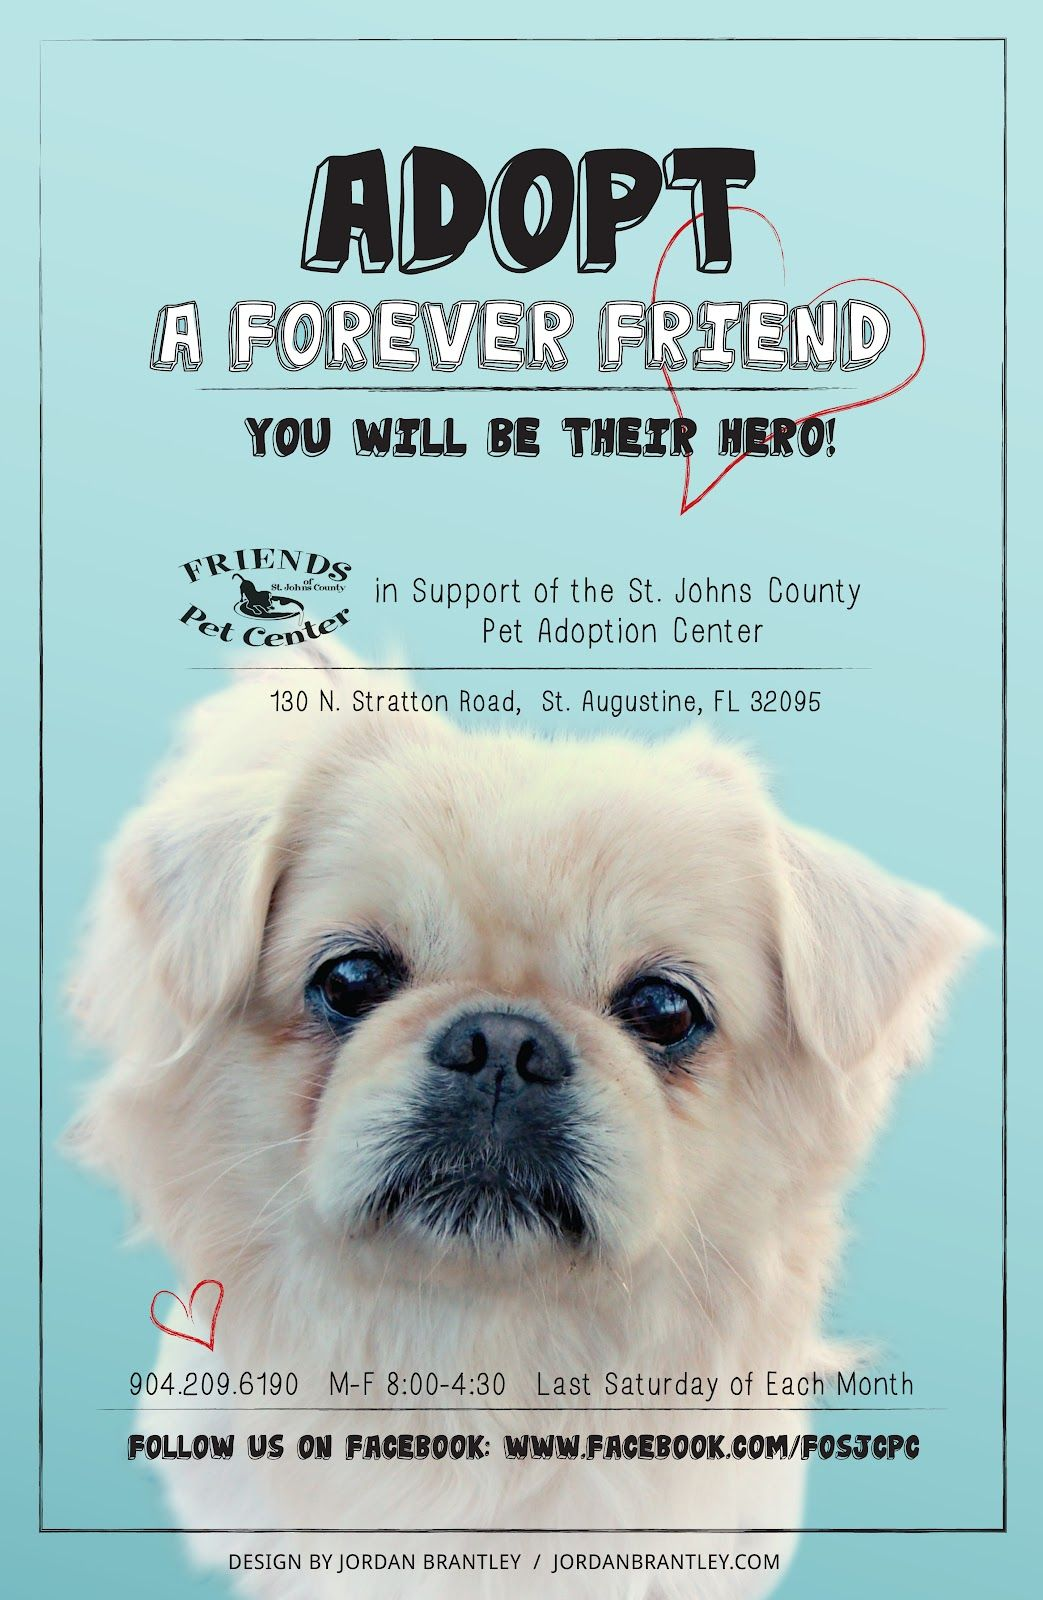 Adoption poster all creatures pinterest adoption for Dog adoption flyer template